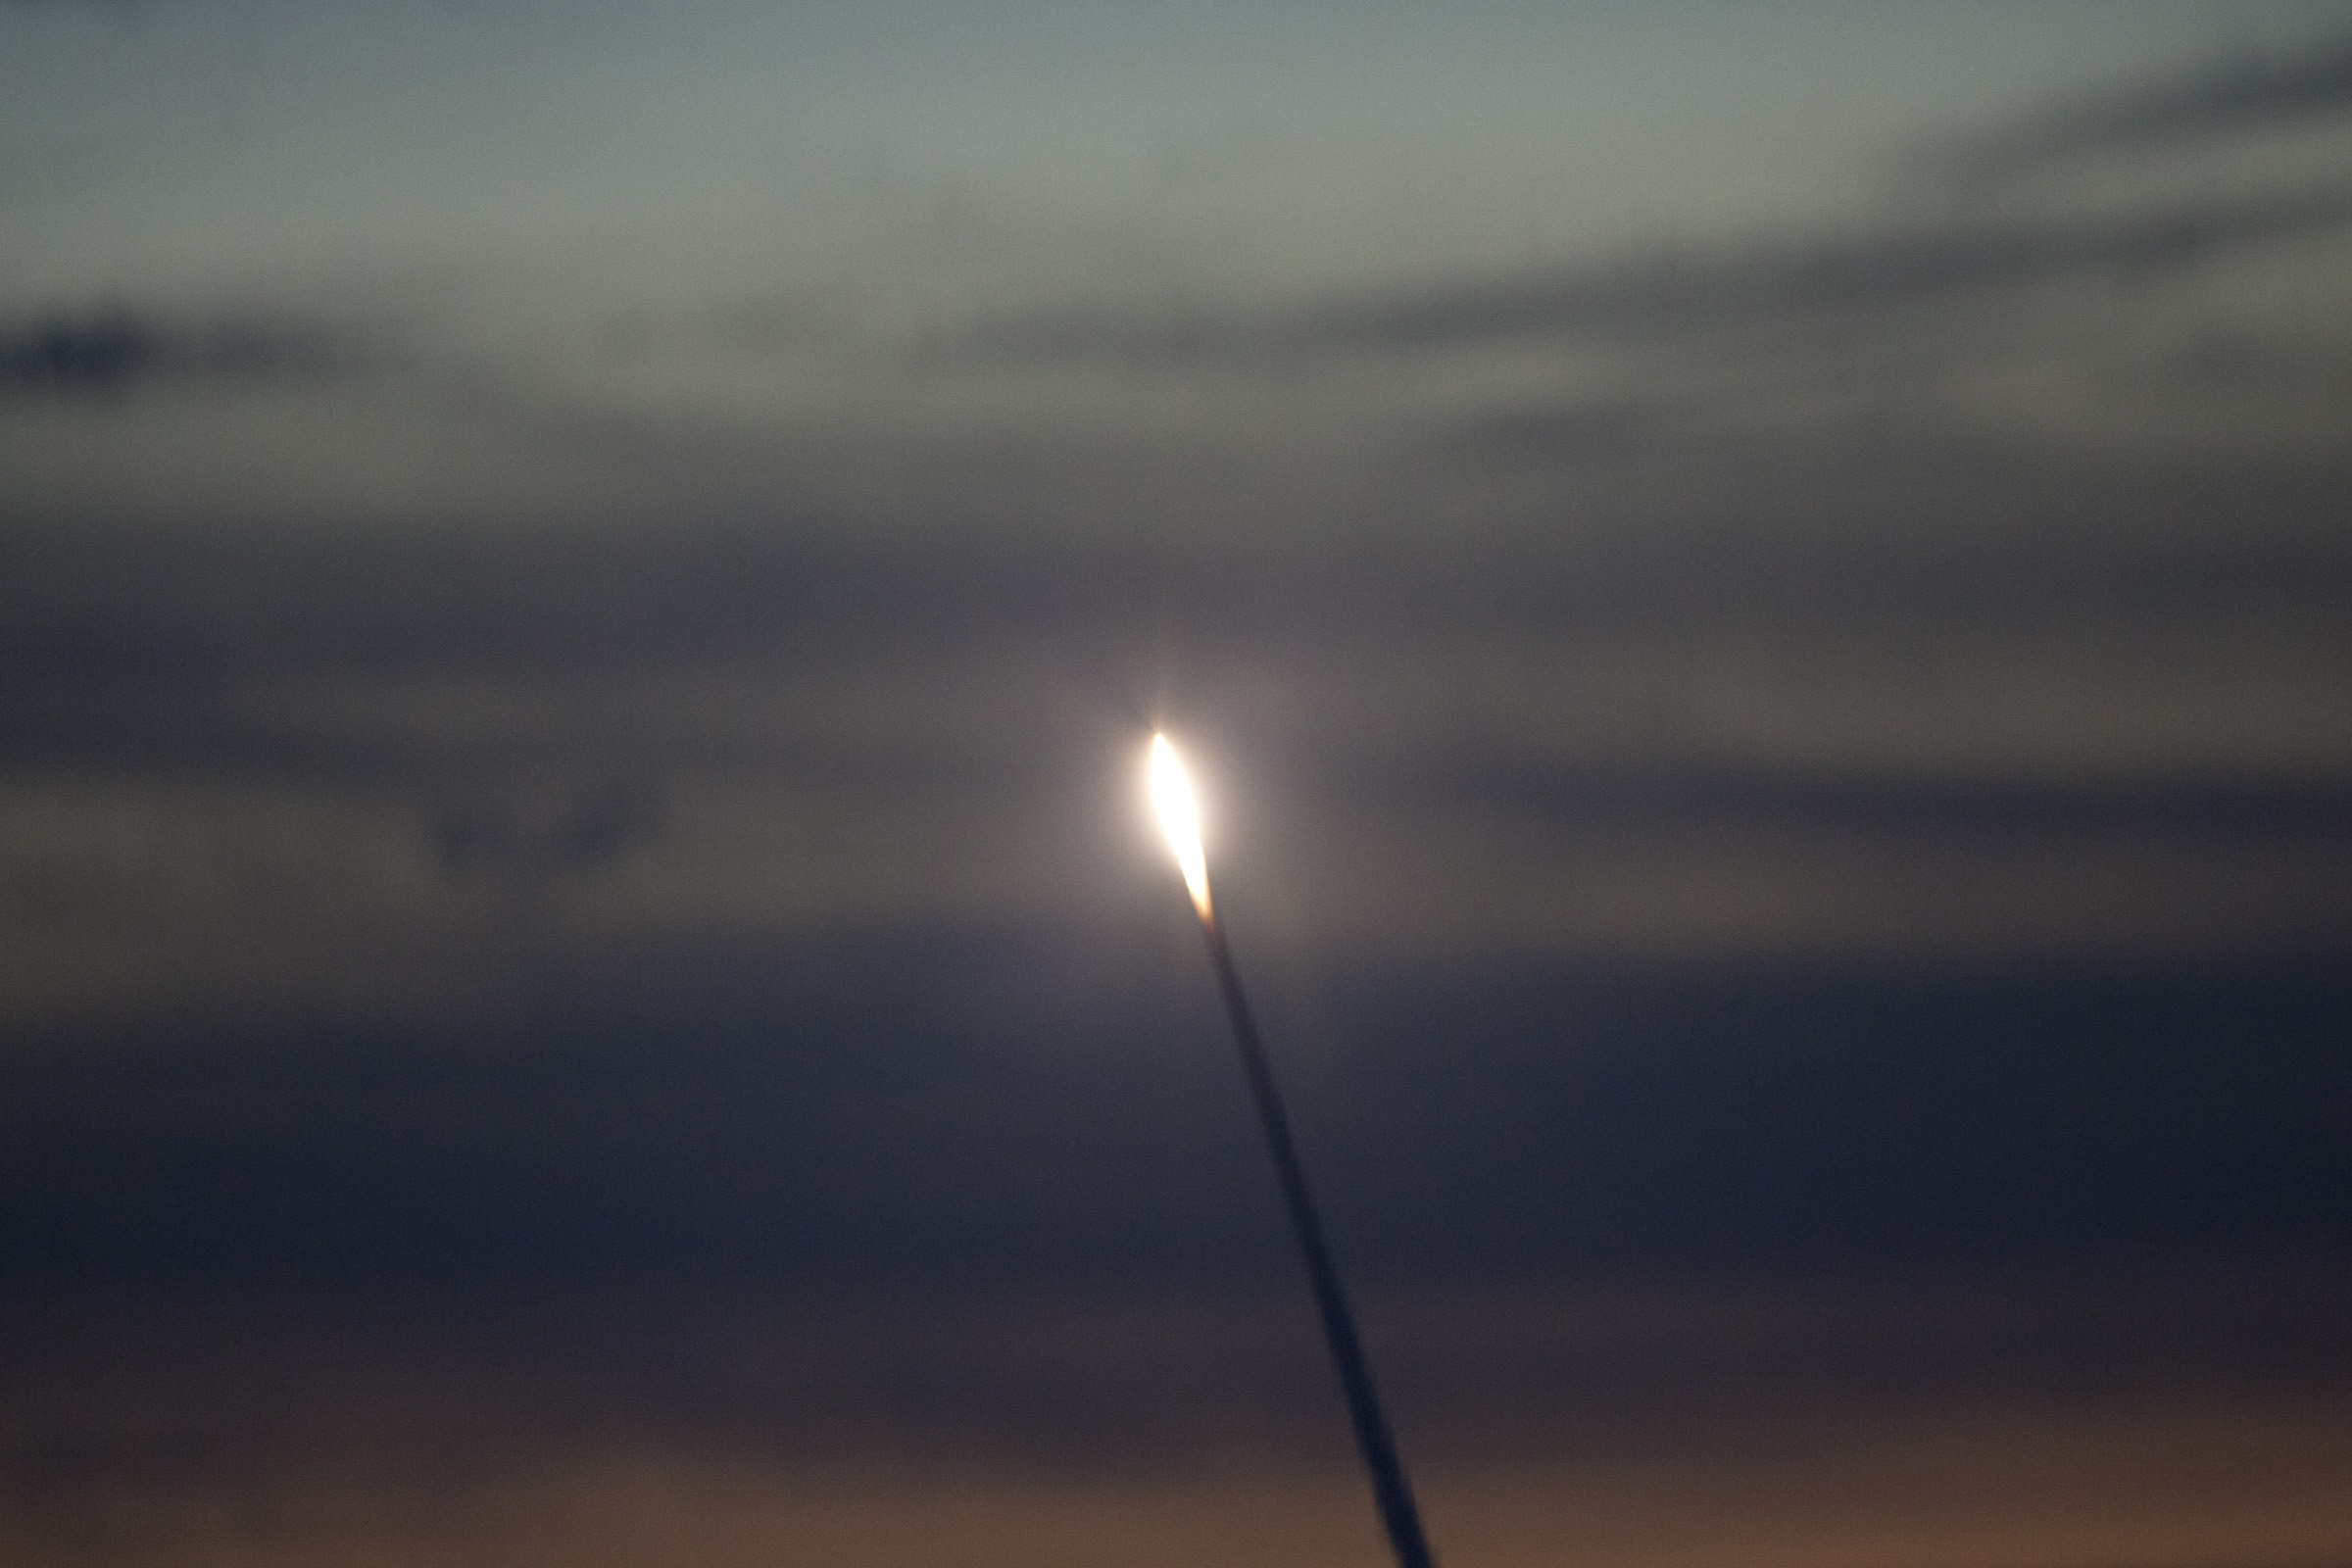 Ascent: NASA Sounding Rocket Soars Spaceward, Jan. 29, 2013